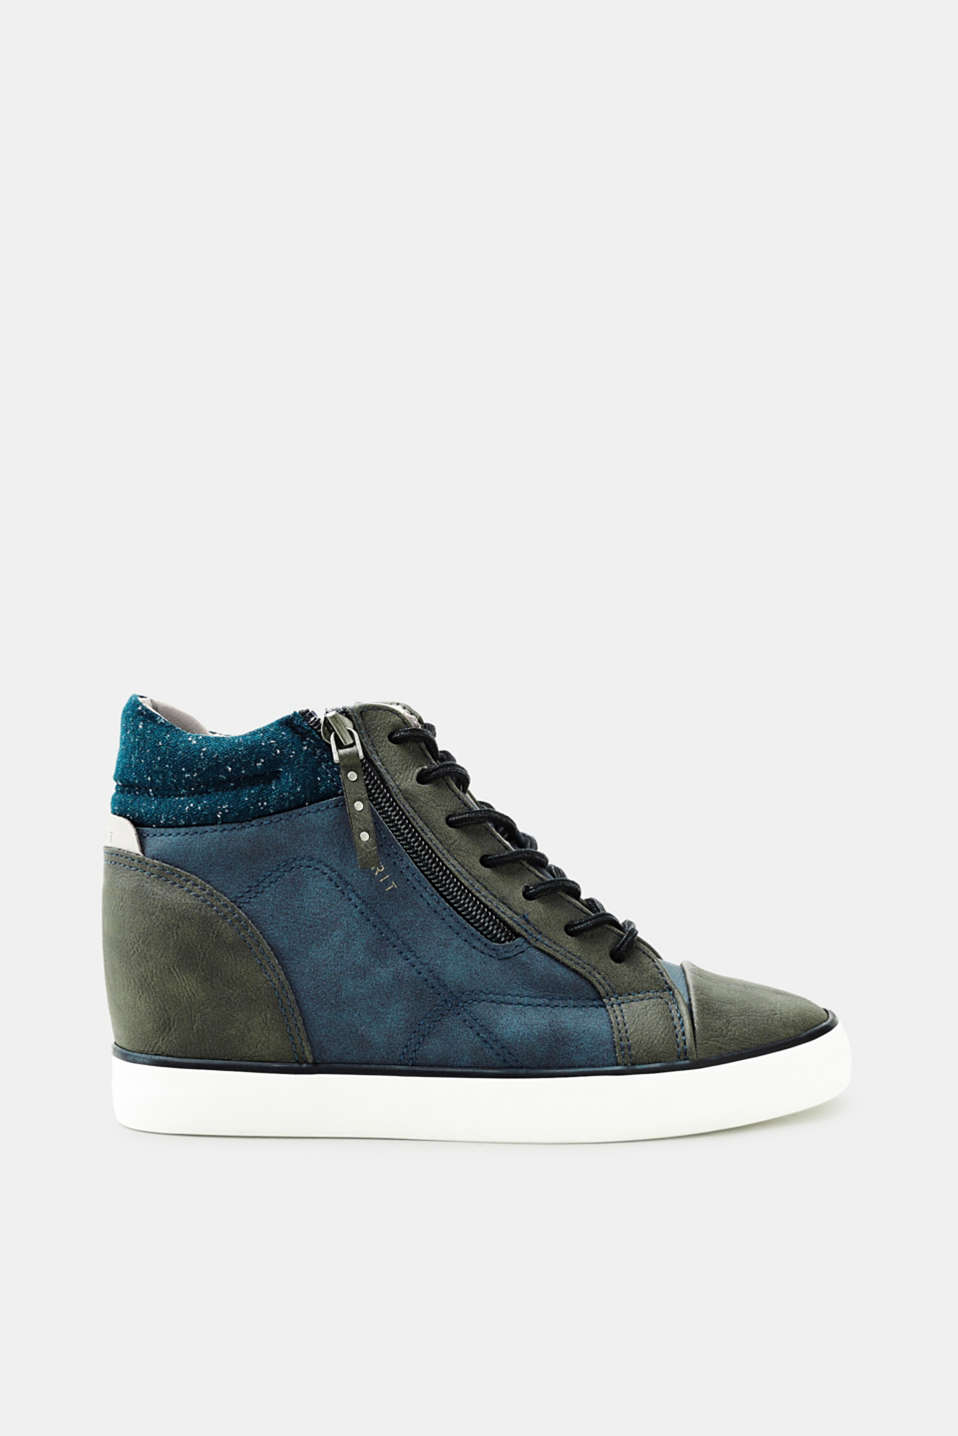 Esprit - Trainers with a wedge heel in faux nubuck leather